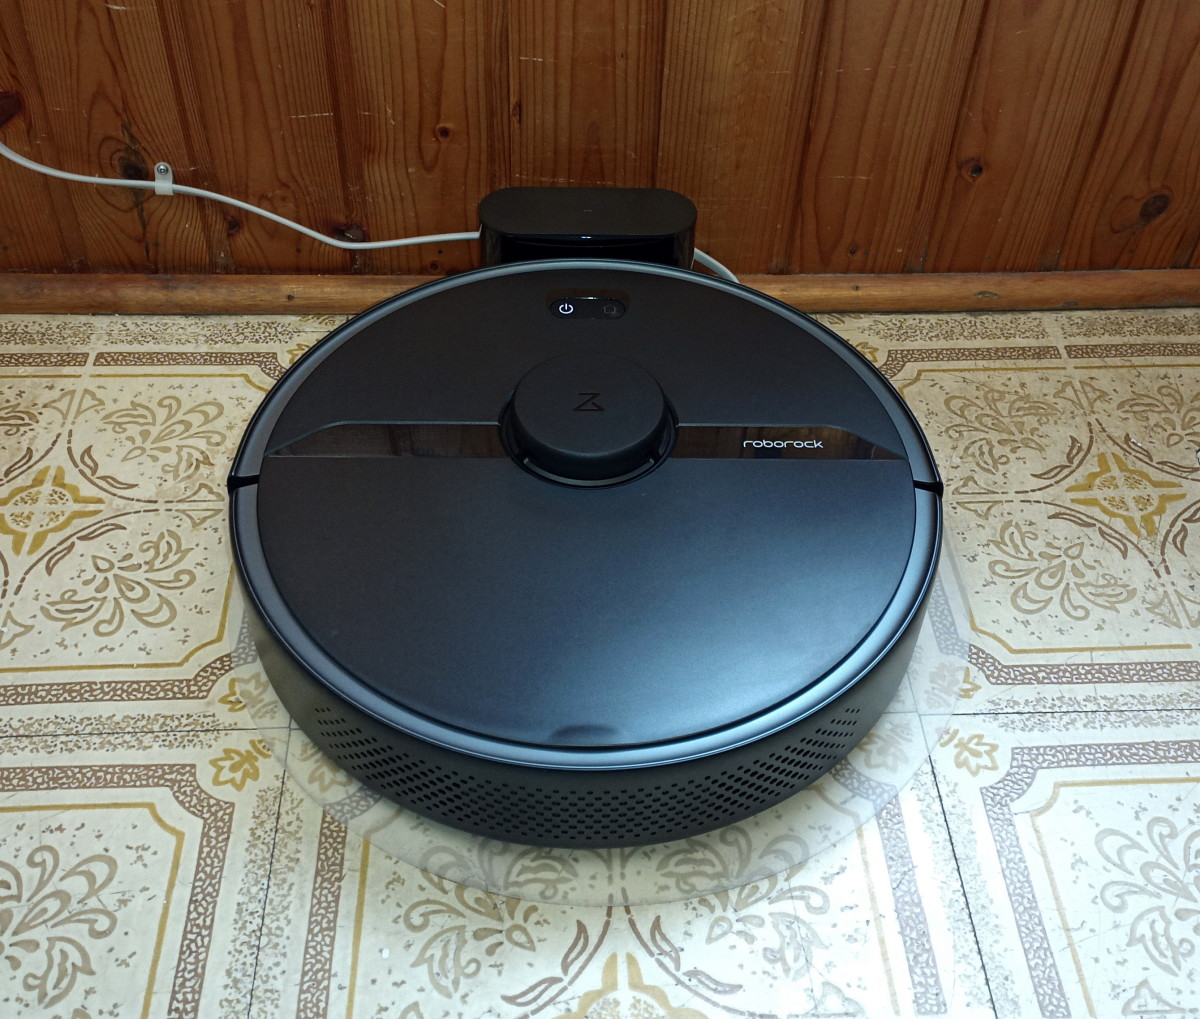 Review of the Roborock S6 Pure Robotic Vacuum Cleaner